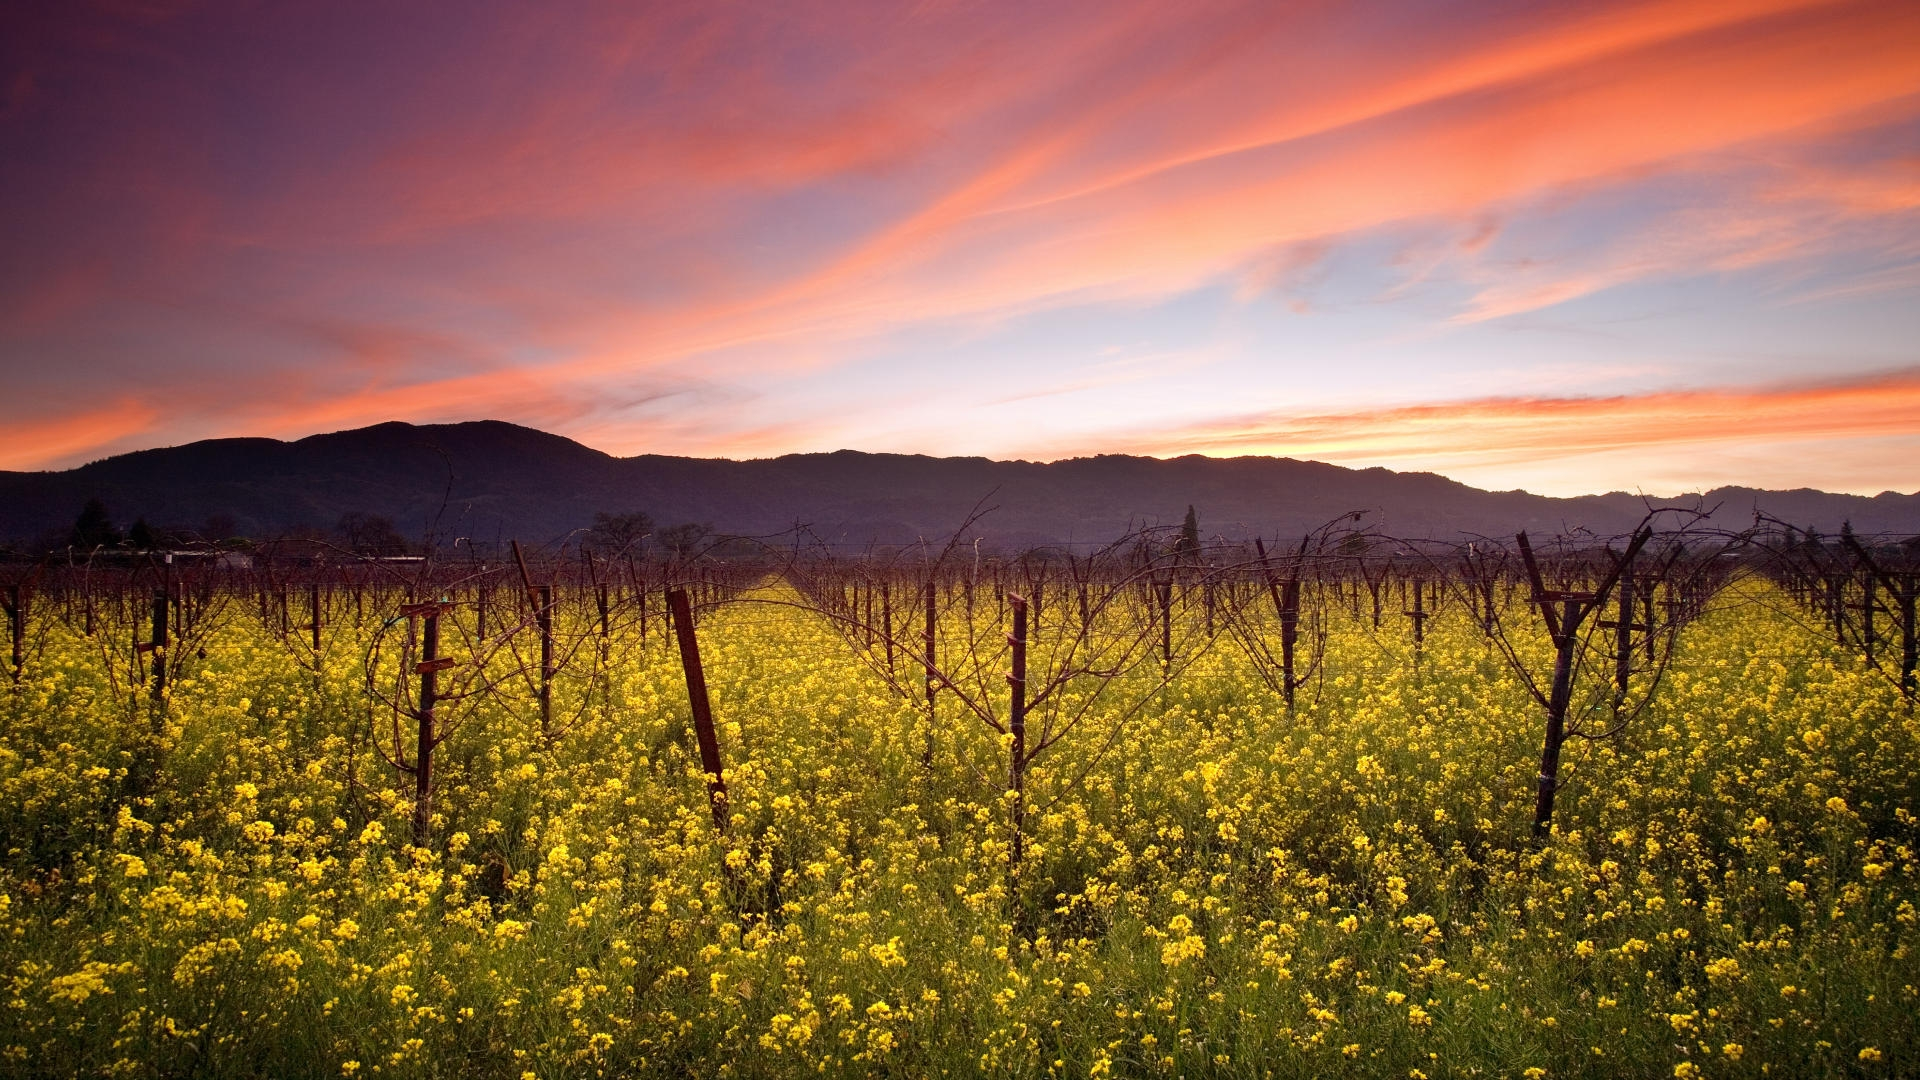 sunset-and-wild-mustard-napa-valley-vineyards-california-wallpaper-for-1920x1080-hdtv-1080p-15-21